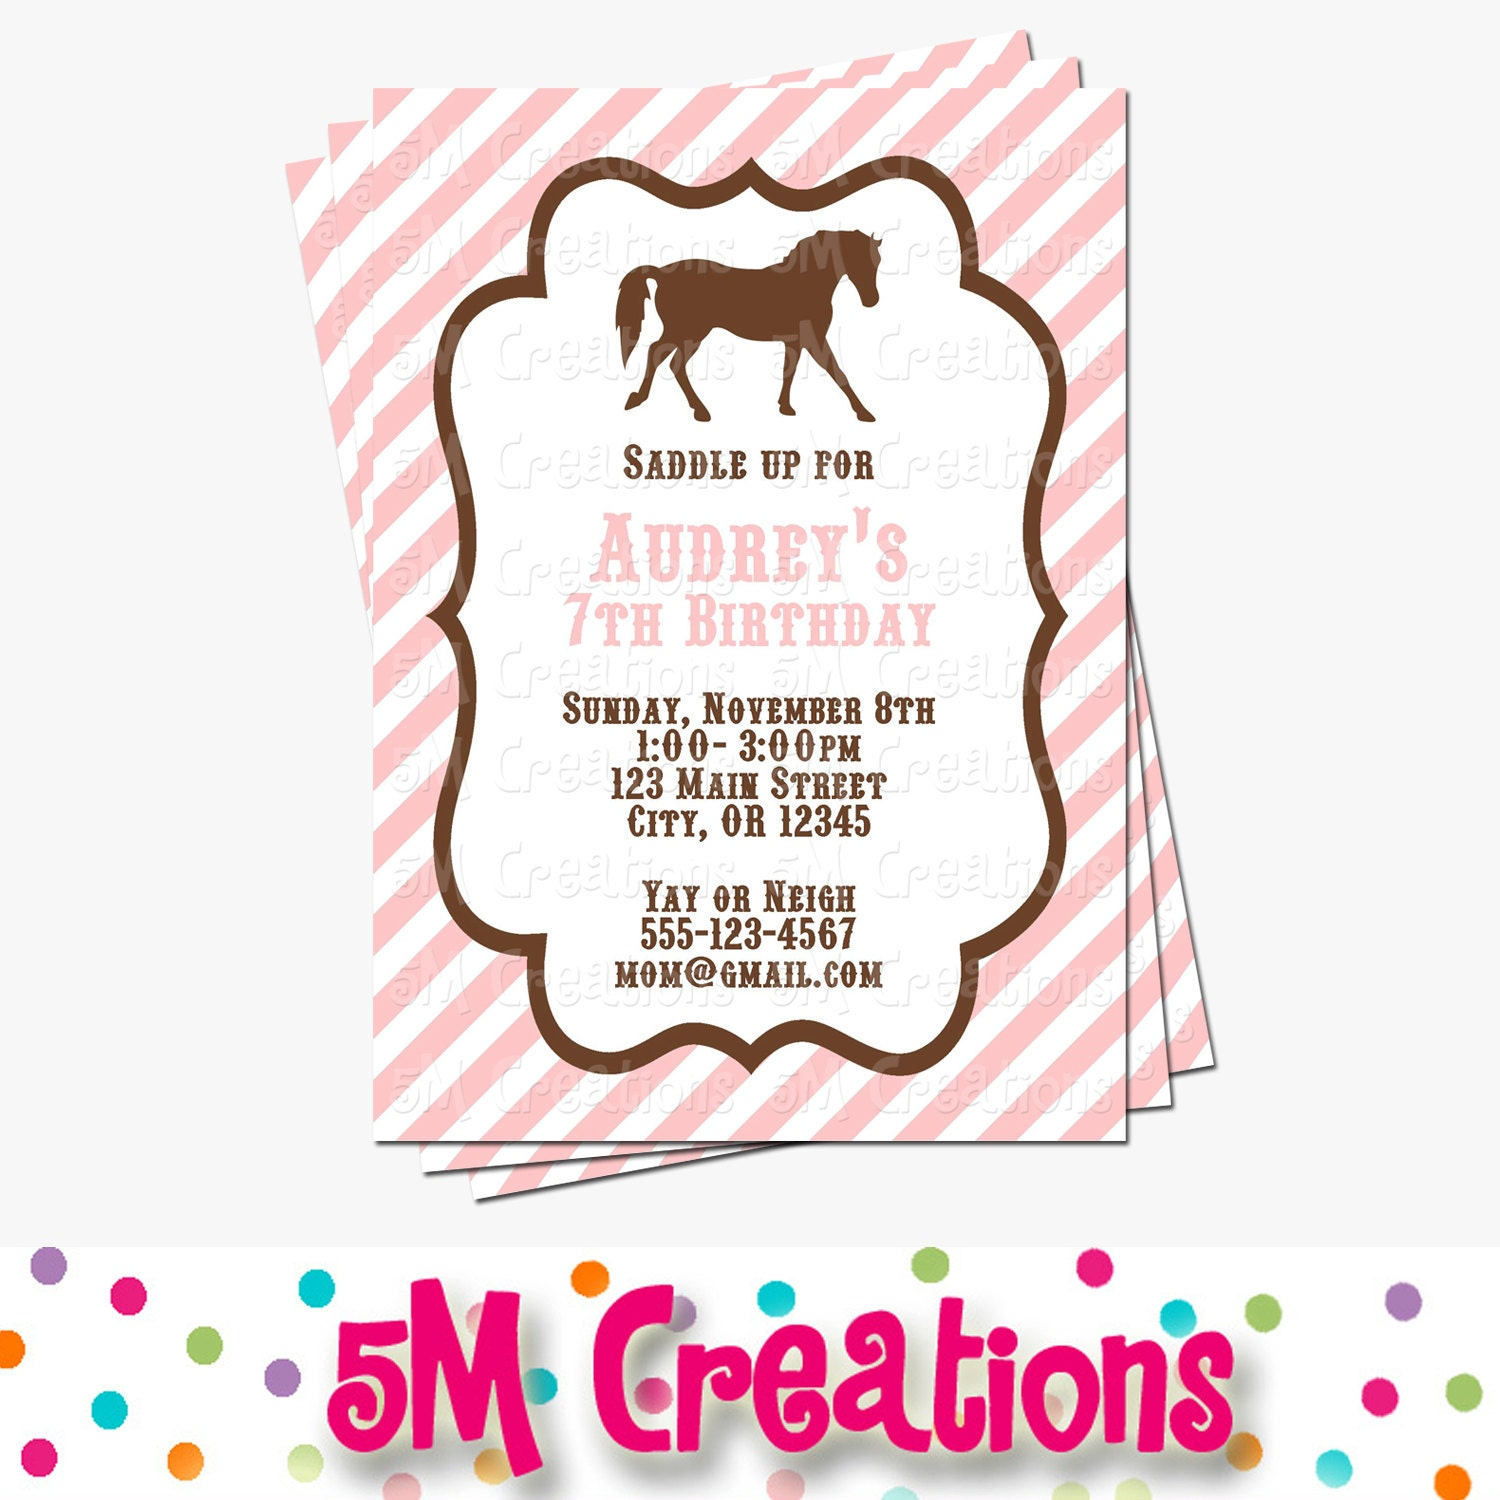 Pony party invitation horse birthday invitations cowgirl zoom monicamarmolfo Image collections